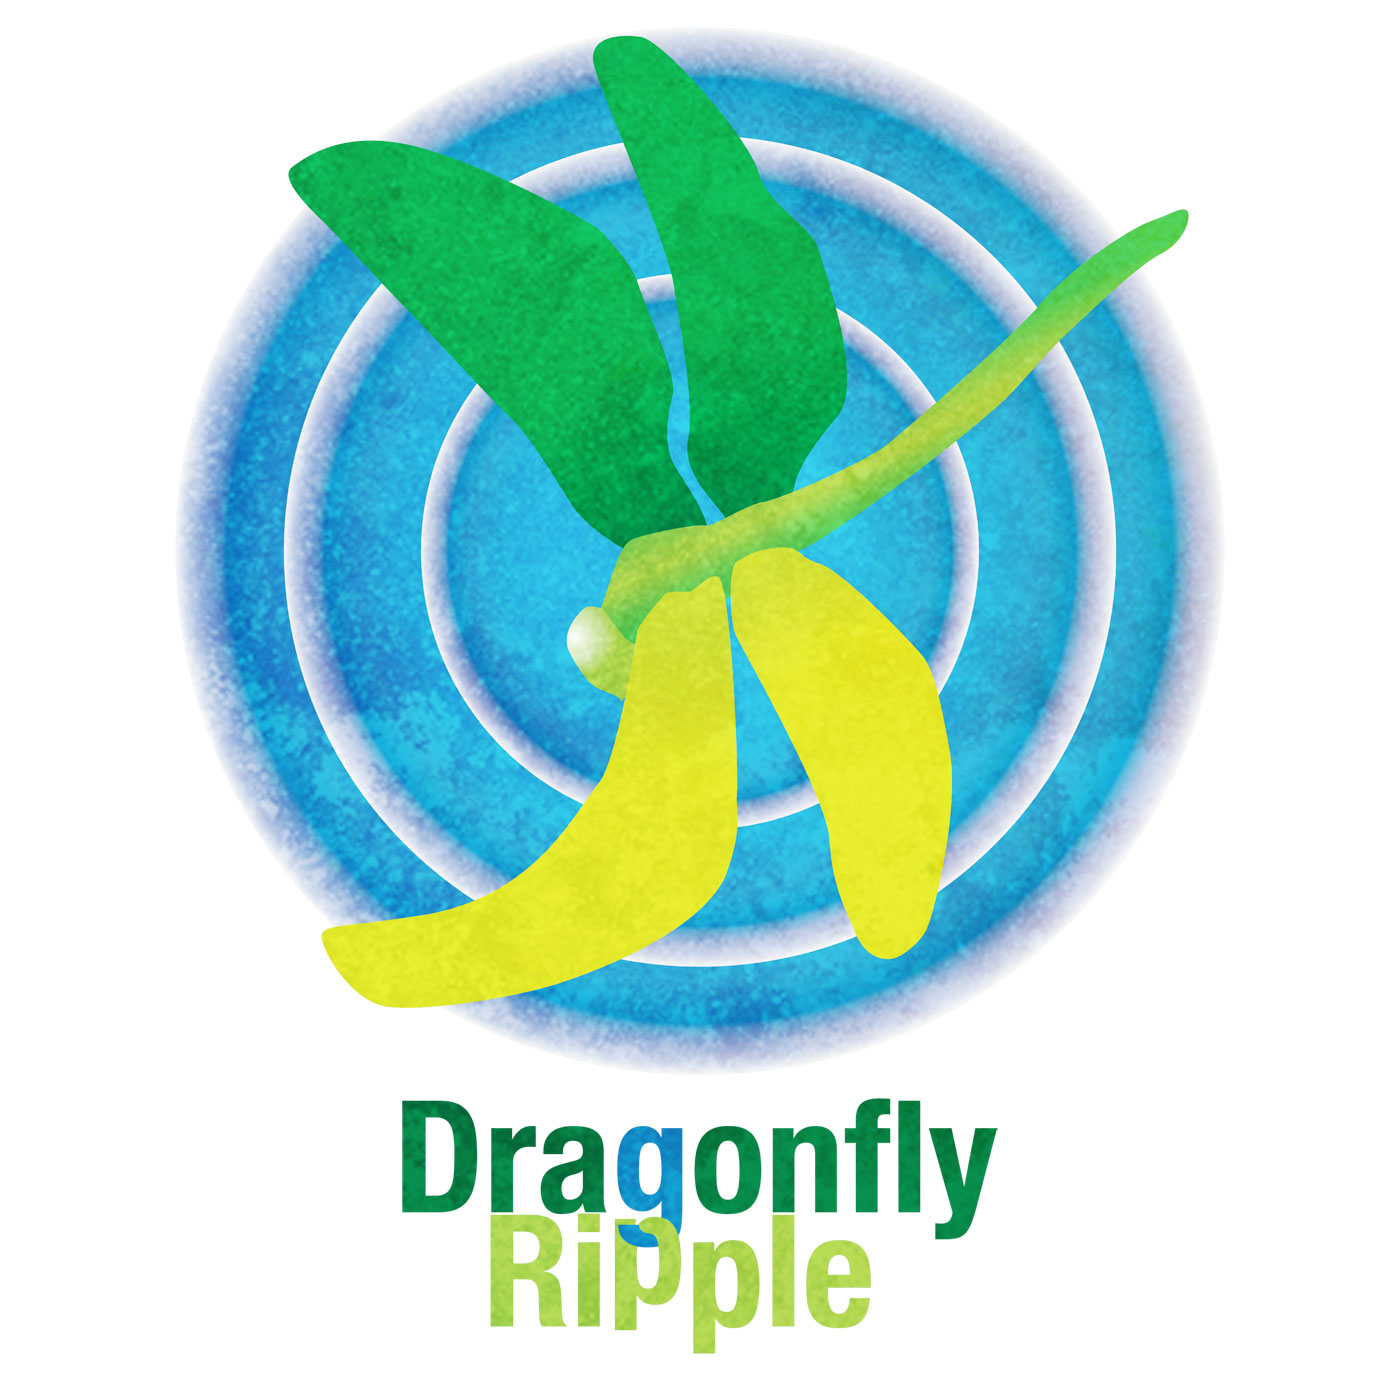 Dragonfly Ripple: Bringing Up the Next Generation of Nerds